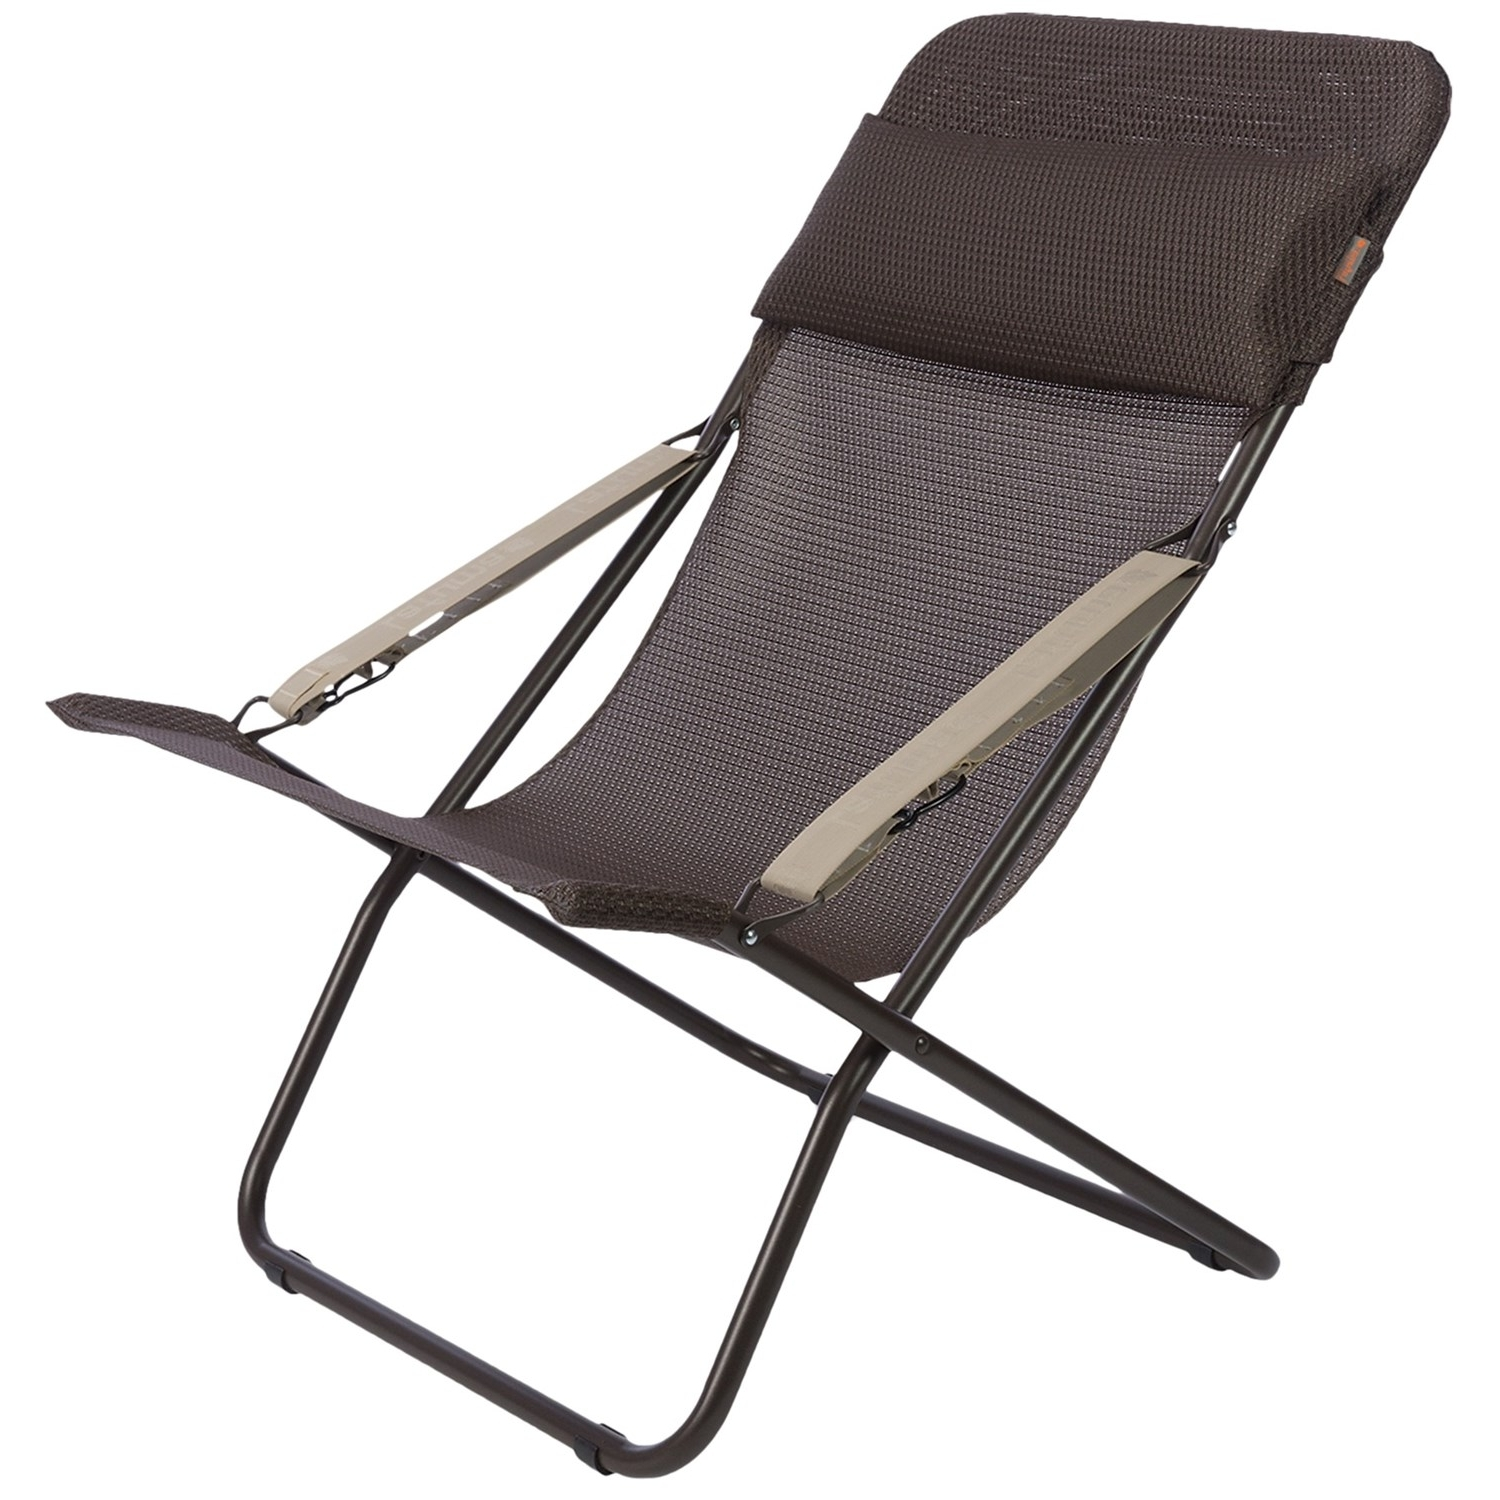 Most Up To Date Lounge Chair : Folding Lawn Chairs Sturdy Outdoor Chaise Lounge Inside Chaise Lounge Folding Chairs (View 7 of 15)